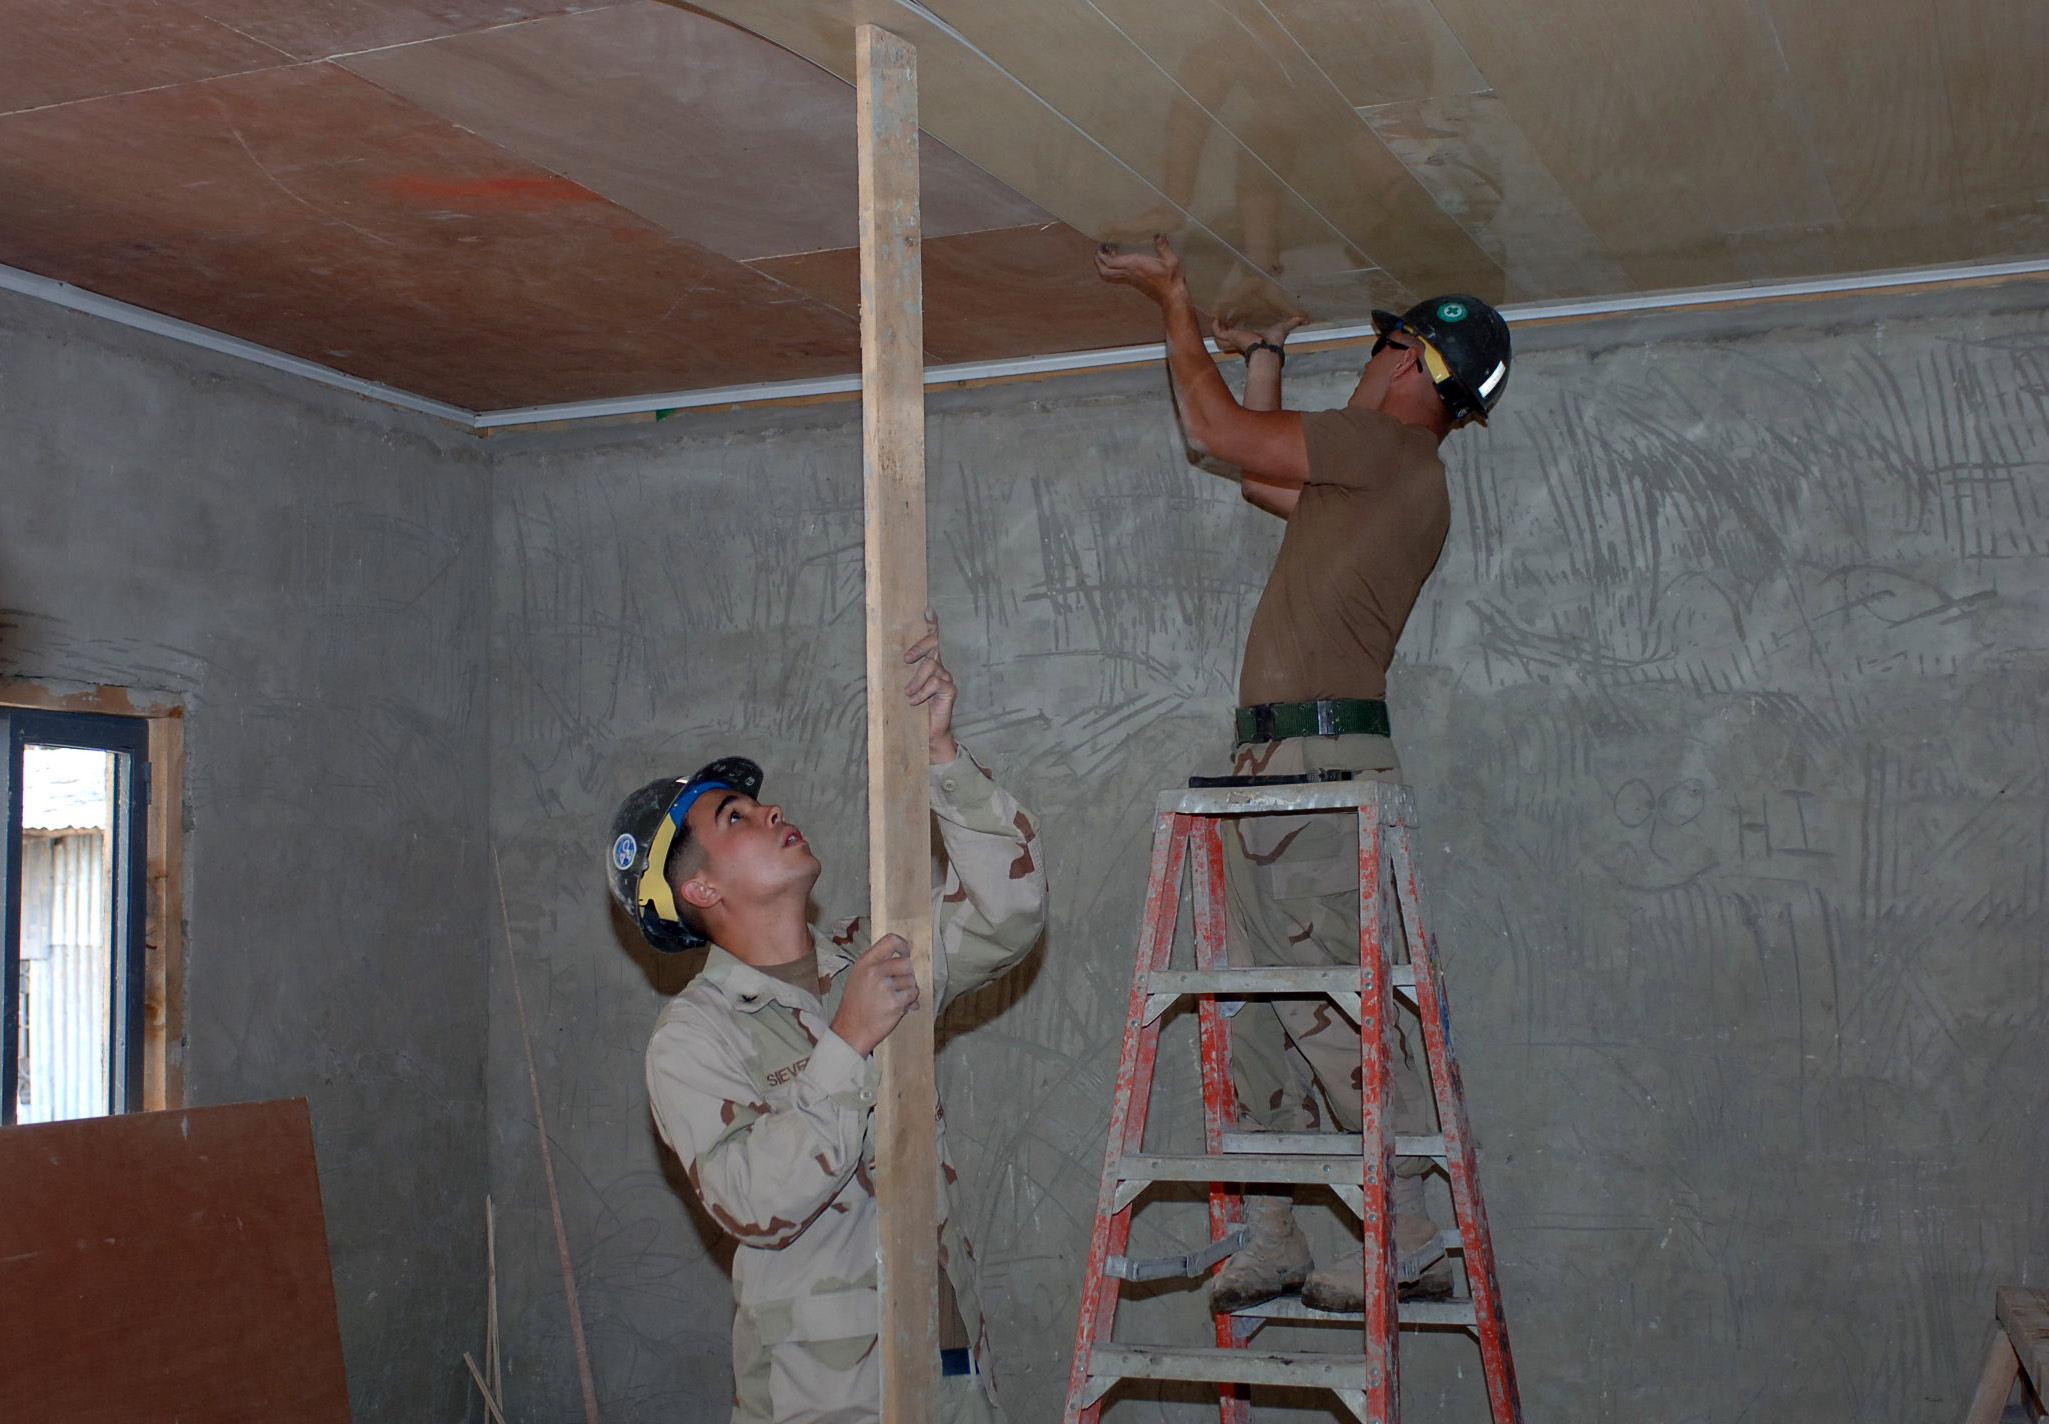 How to install ceiling tile - File Us Navy 071004n1003p001 Utilitiesman 3rd Class Brian Sievers File Us Navy 071004n1003p001 Utilitiesman 3rd Class Brian